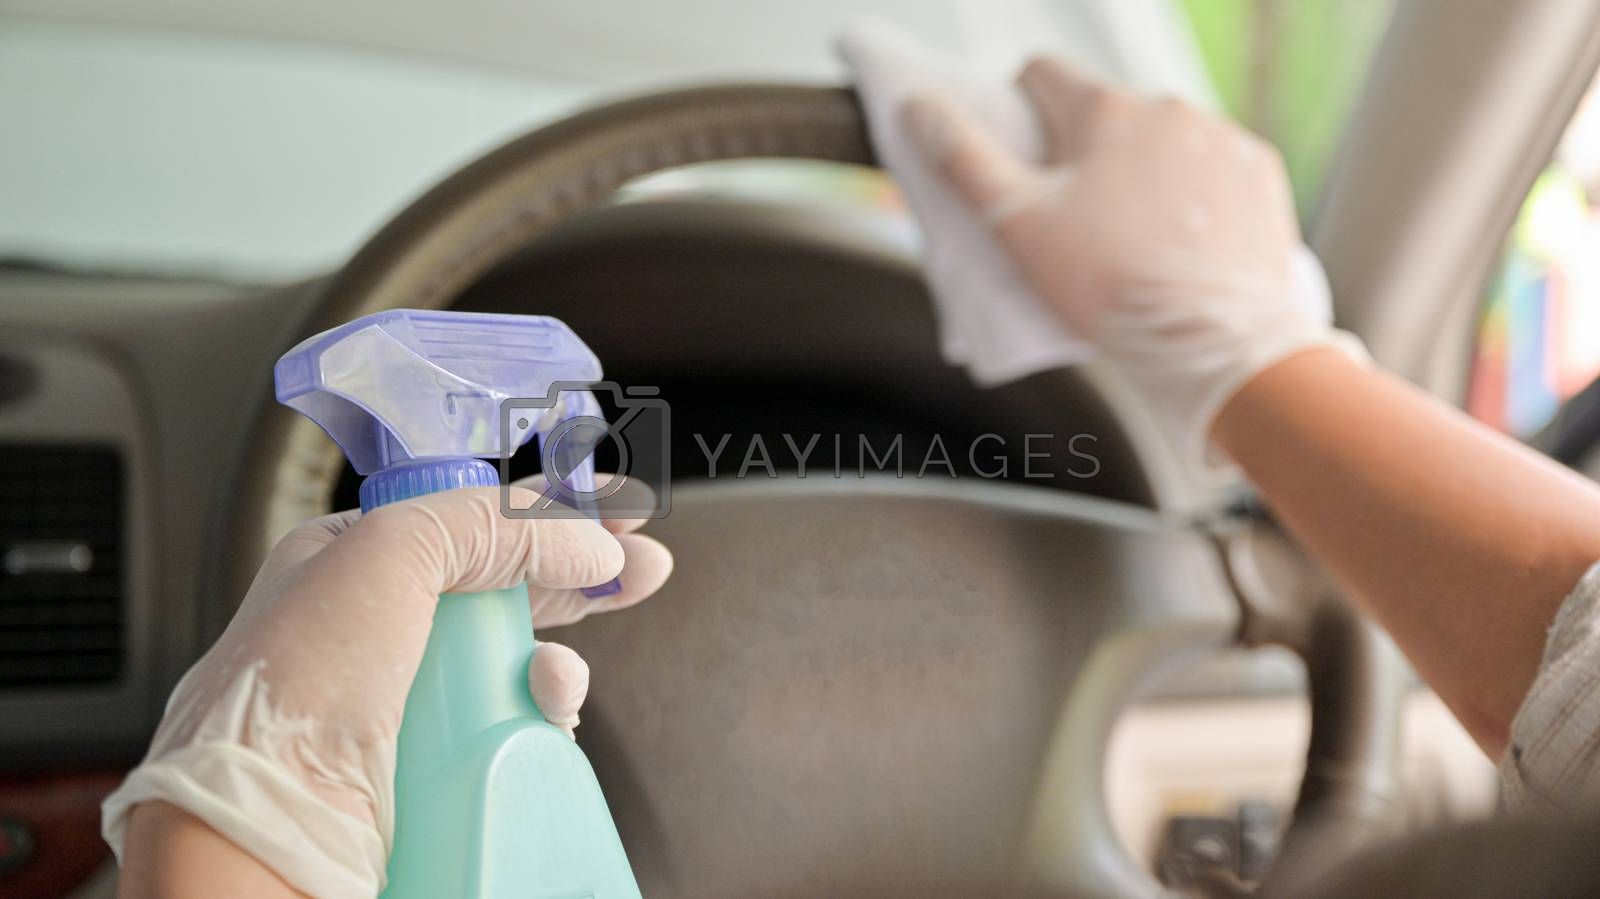 Cropped shot of Spray to clean and disinfect the steering wheel and inside the car.